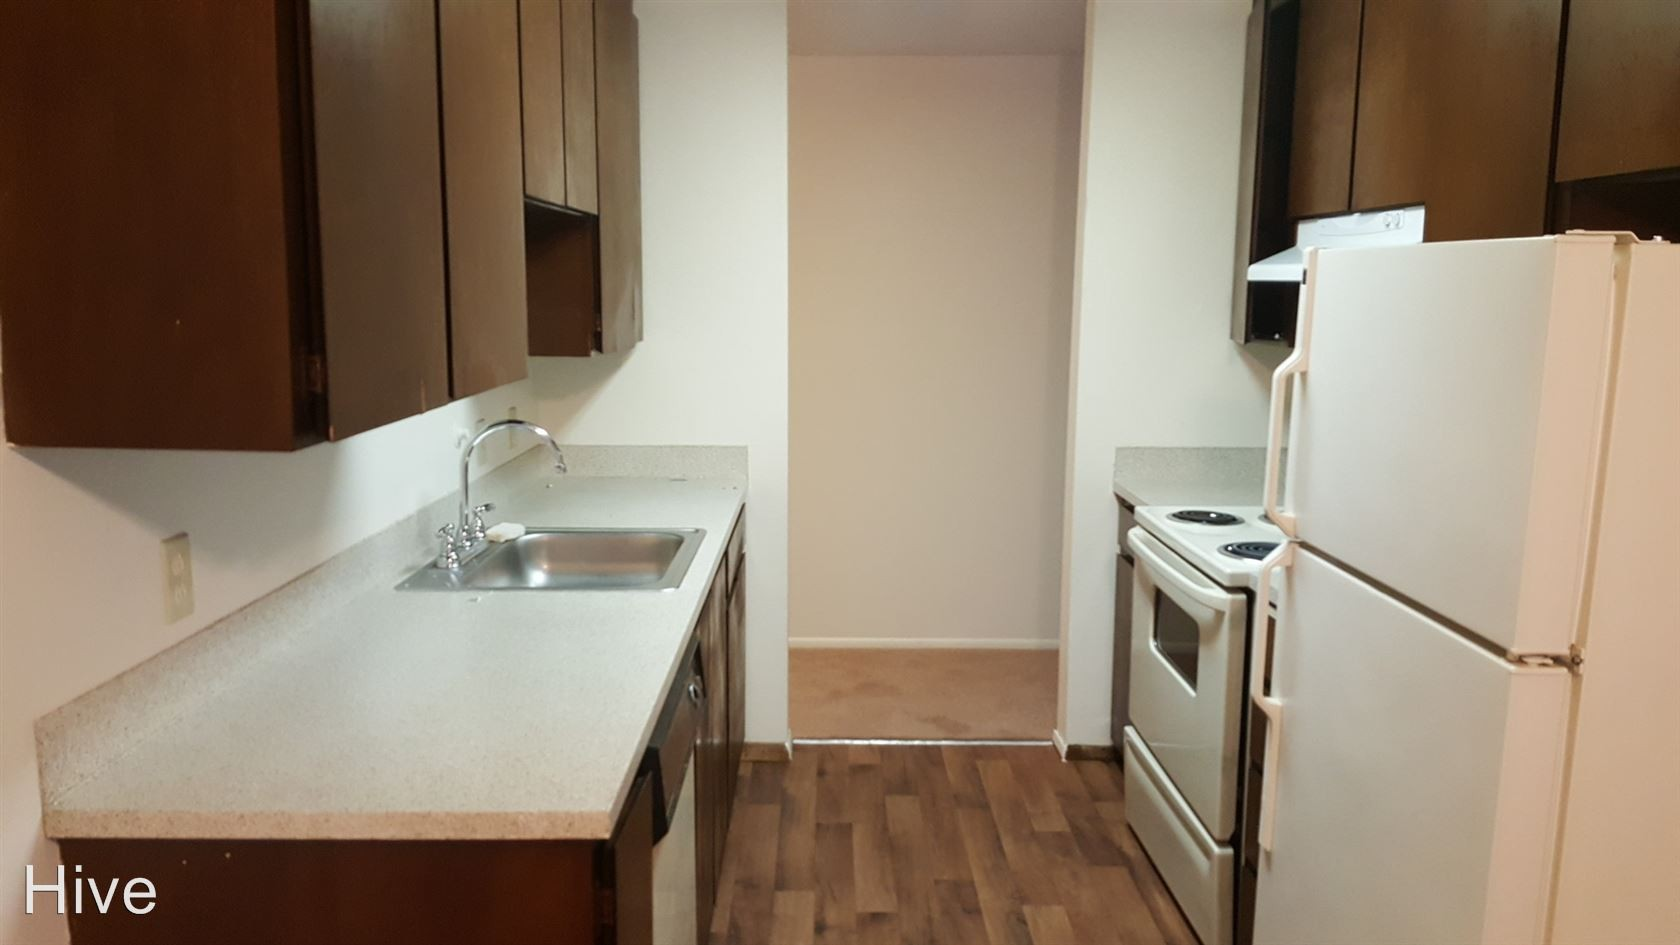 104 nw 104th st seattle wa 98177 1 bedroom apartment for - Seattle 1 bedroom apartments for rent ...